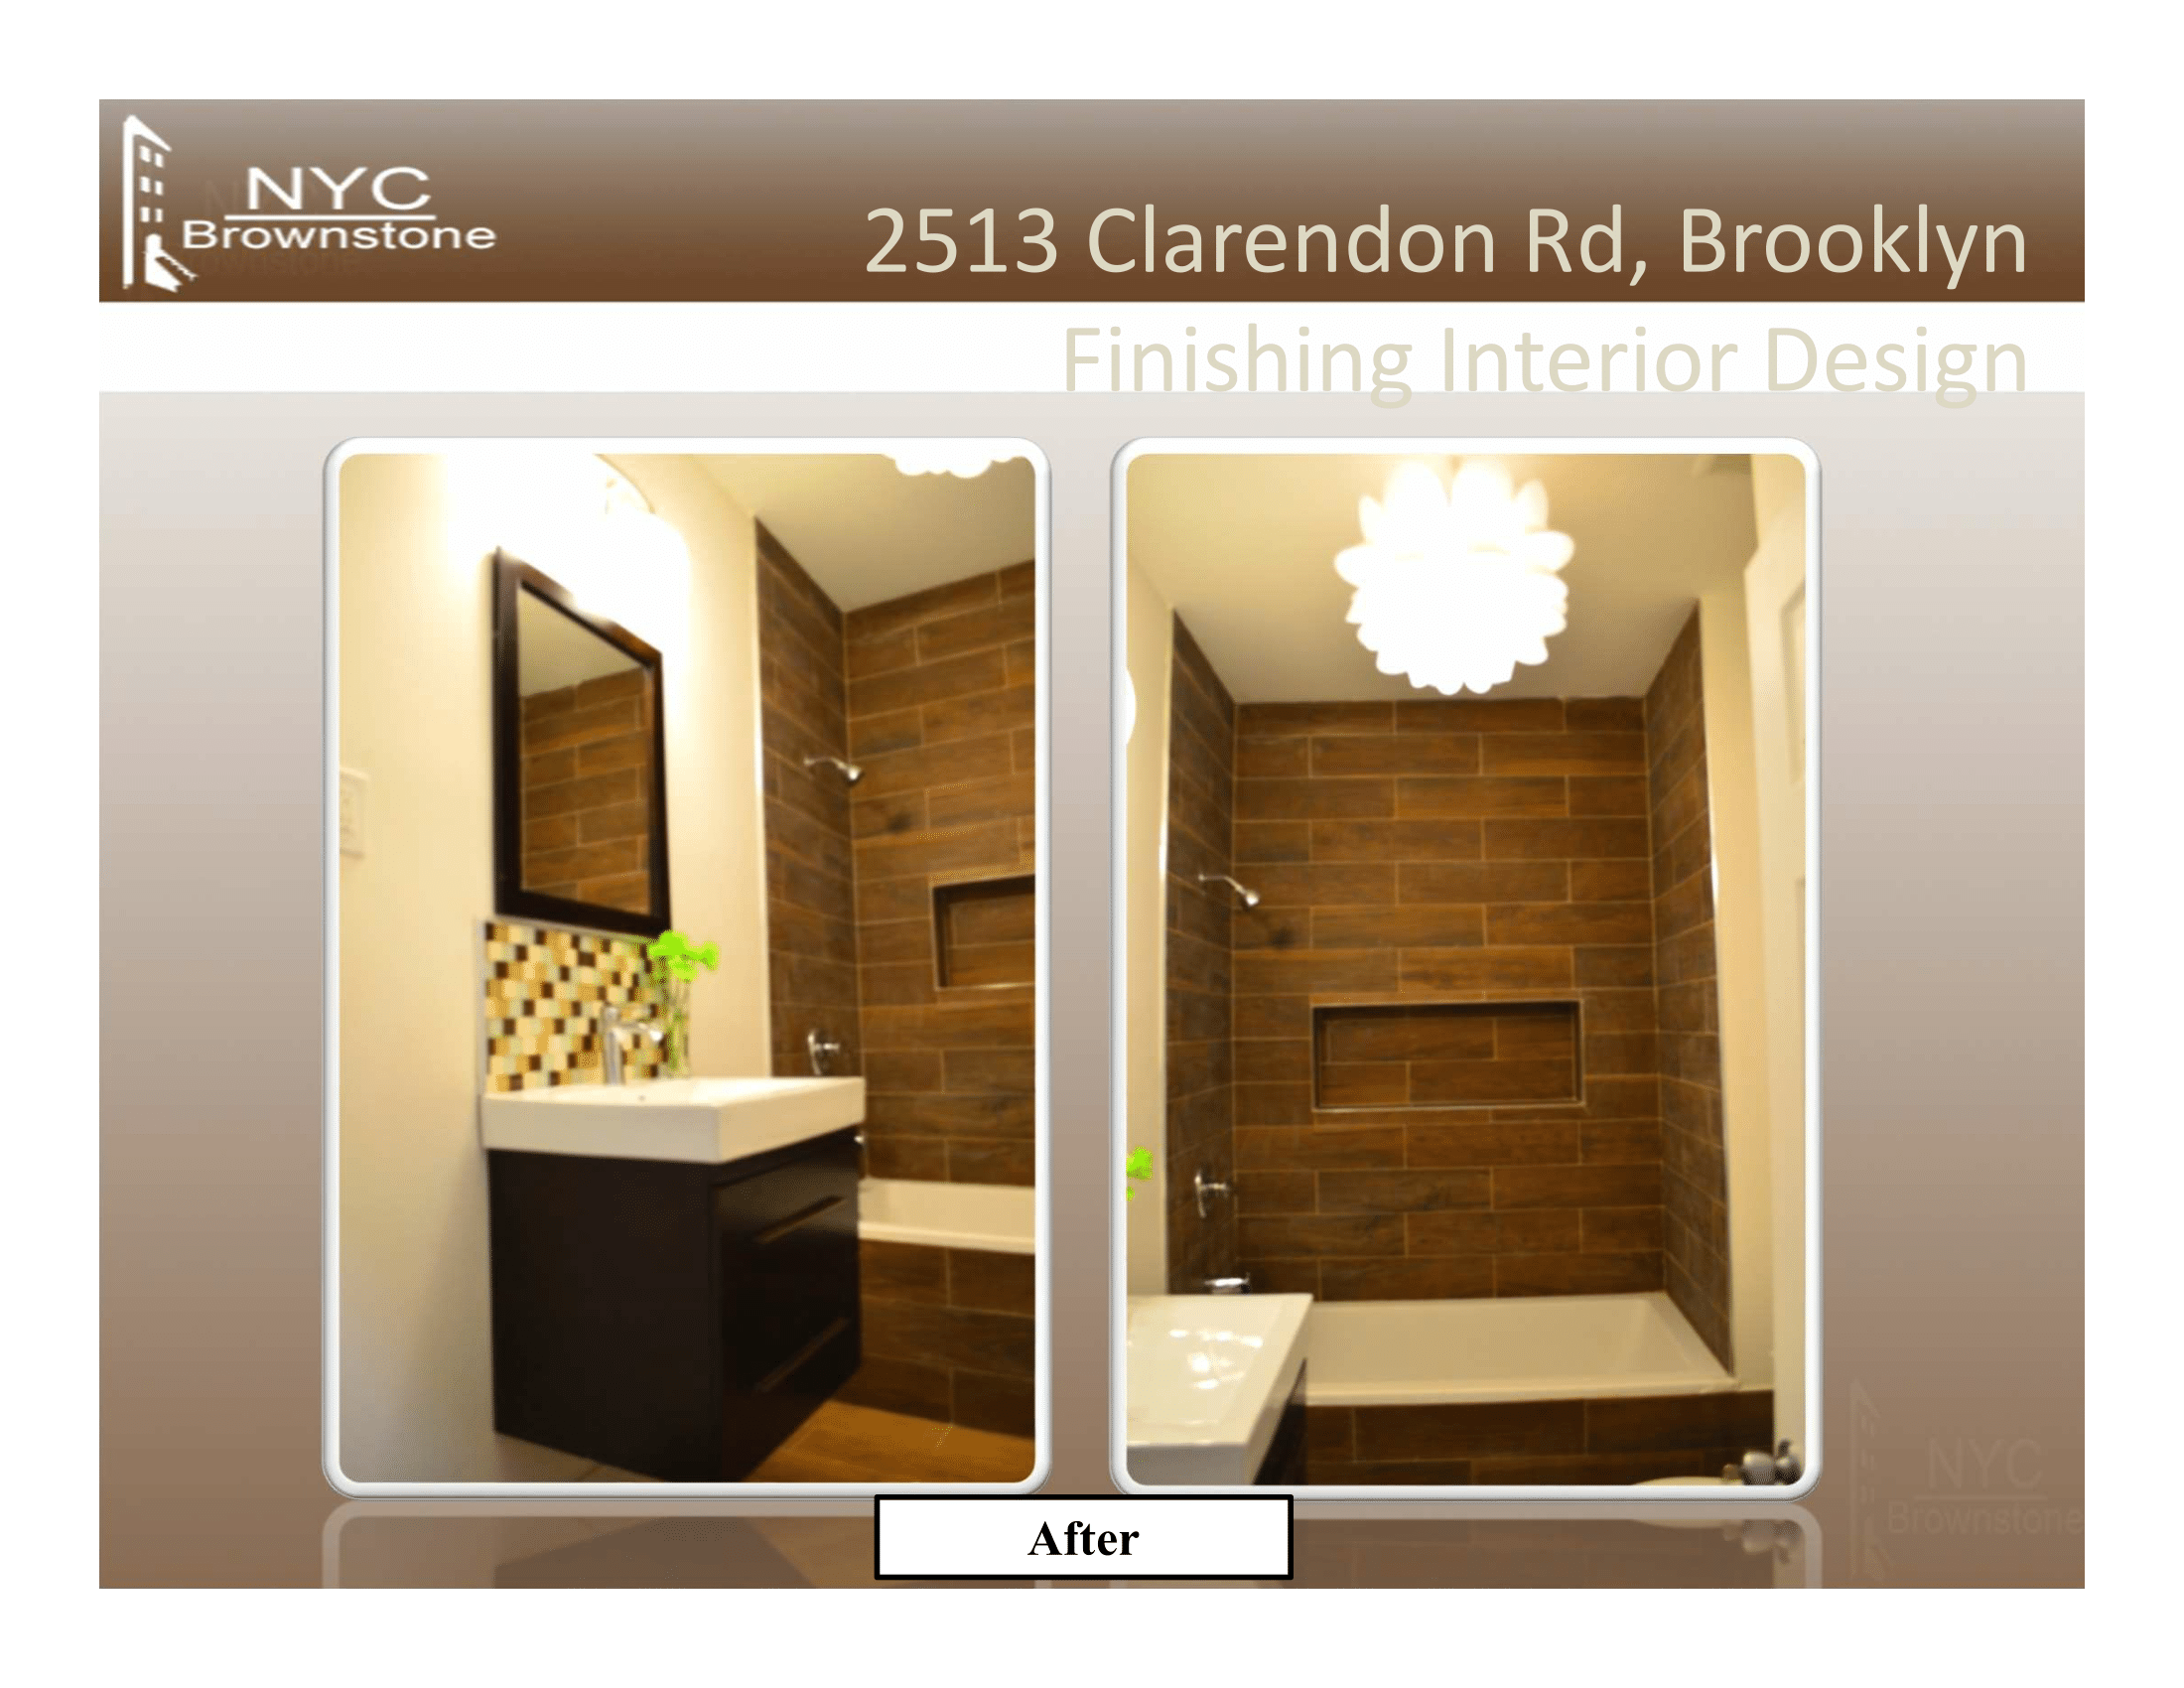 Brownstone Clarendon Renovation-10.png